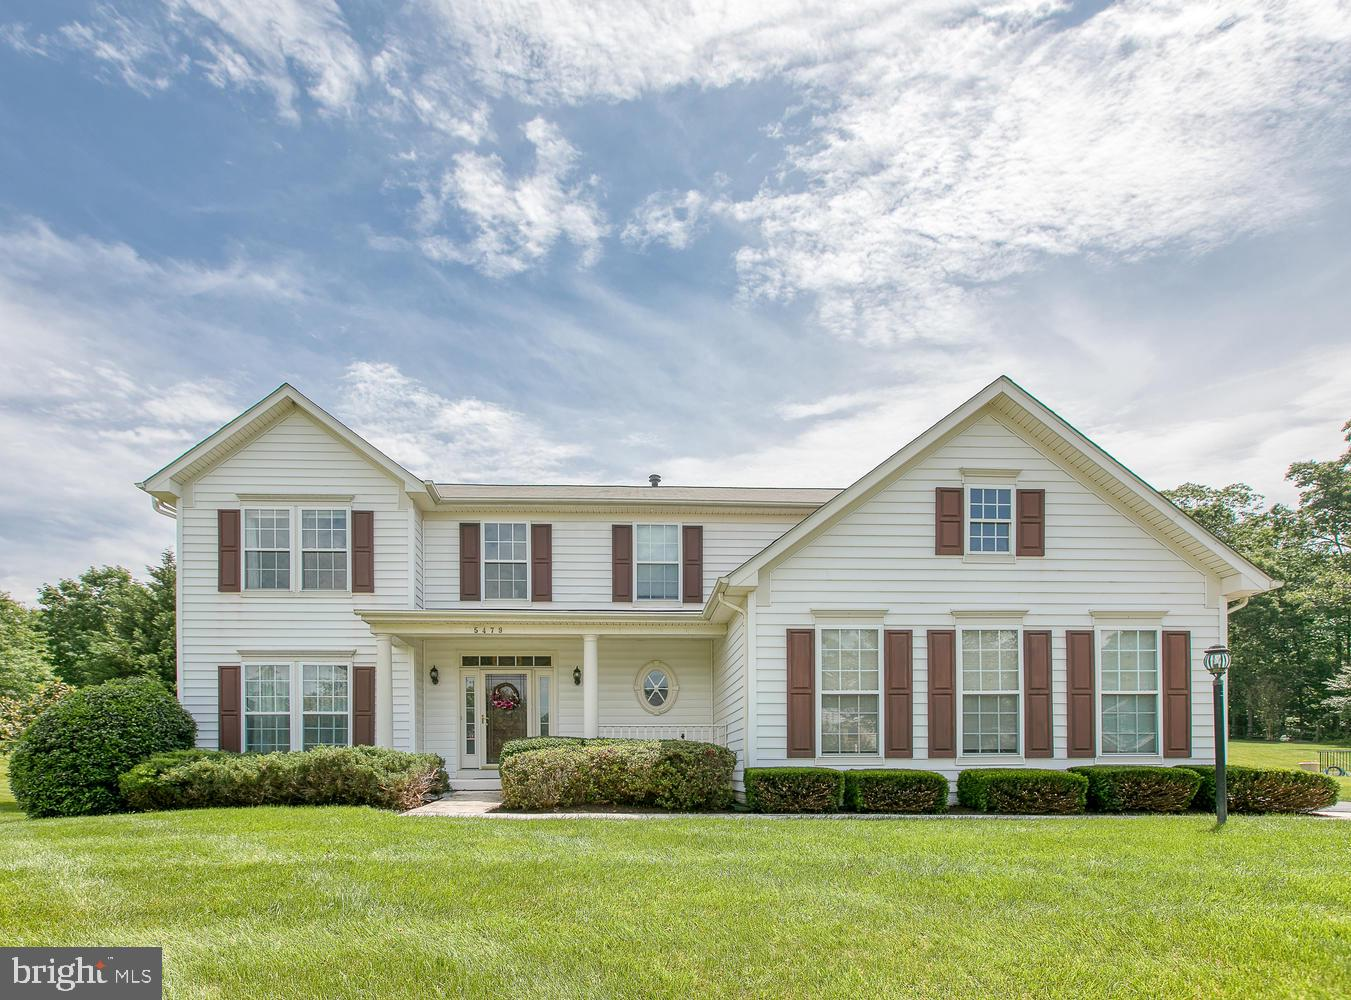 This Absolute Pristine freshly painted Colonial Home located on premium 1/2 acre lot that backs to w